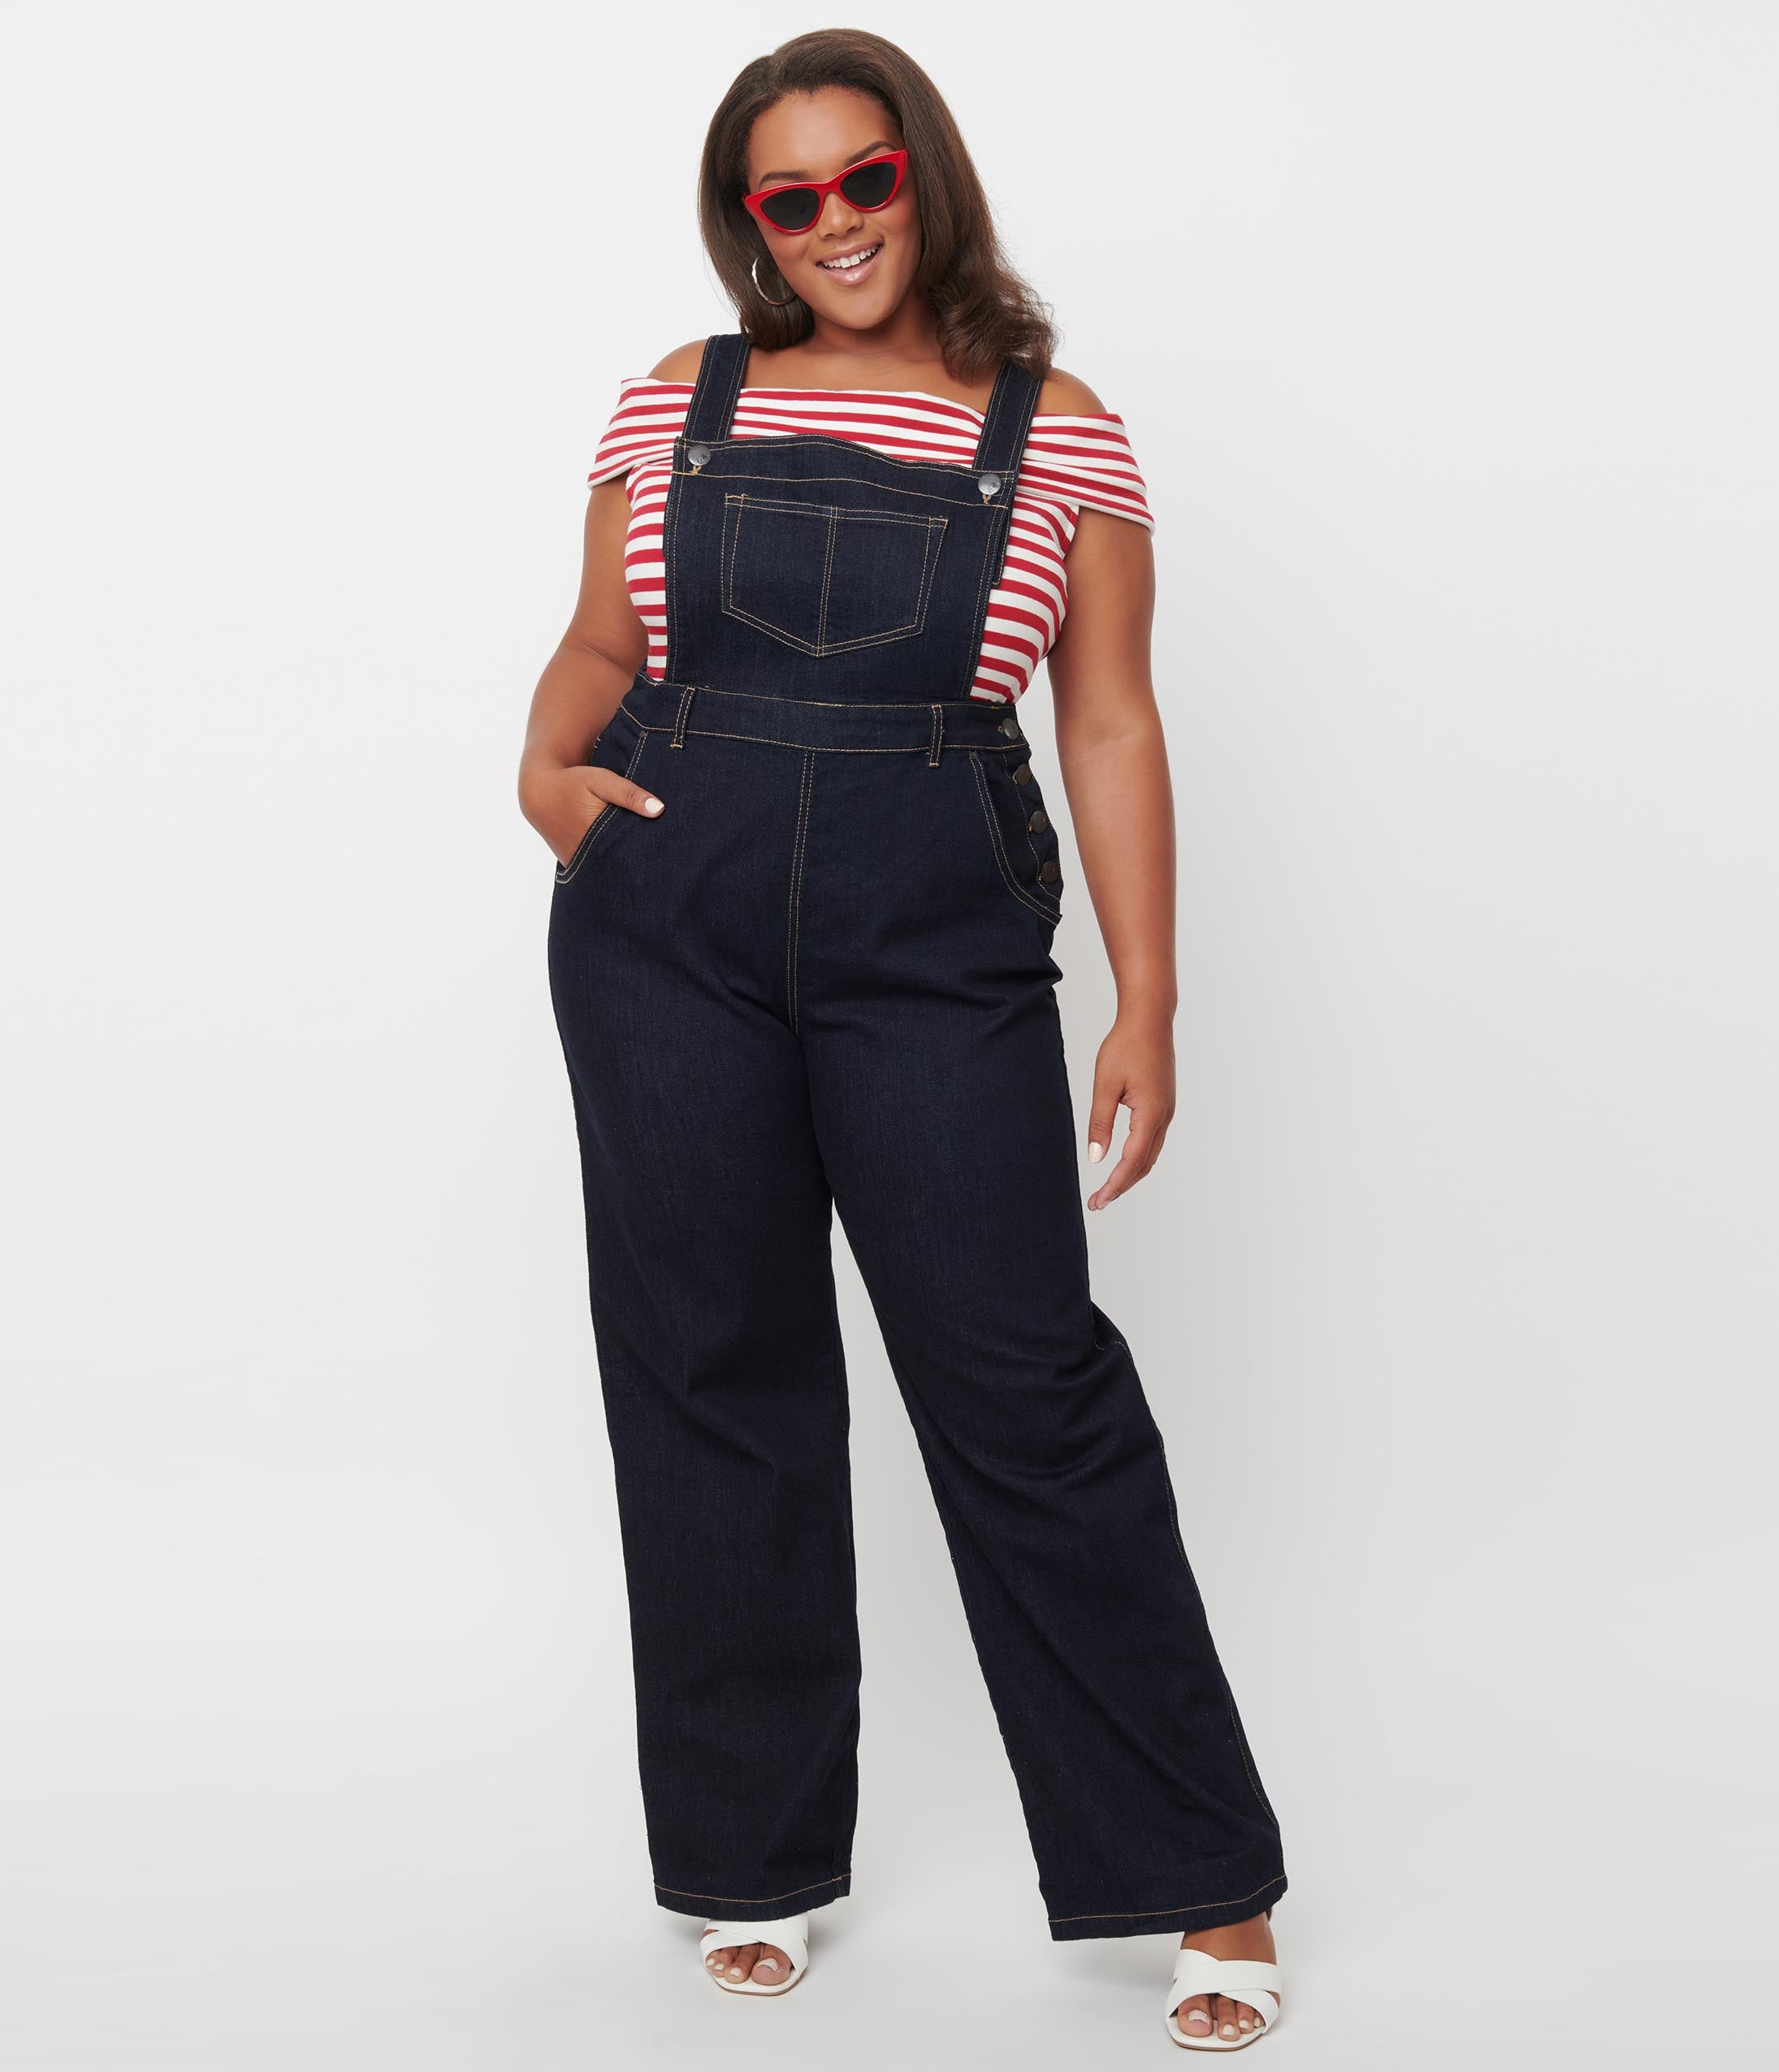 1950s Style Clothing & Fashion Hell Bunny Plus Size Dark Denim Ellie May Overalls $78.00 AT vintagedancer.com